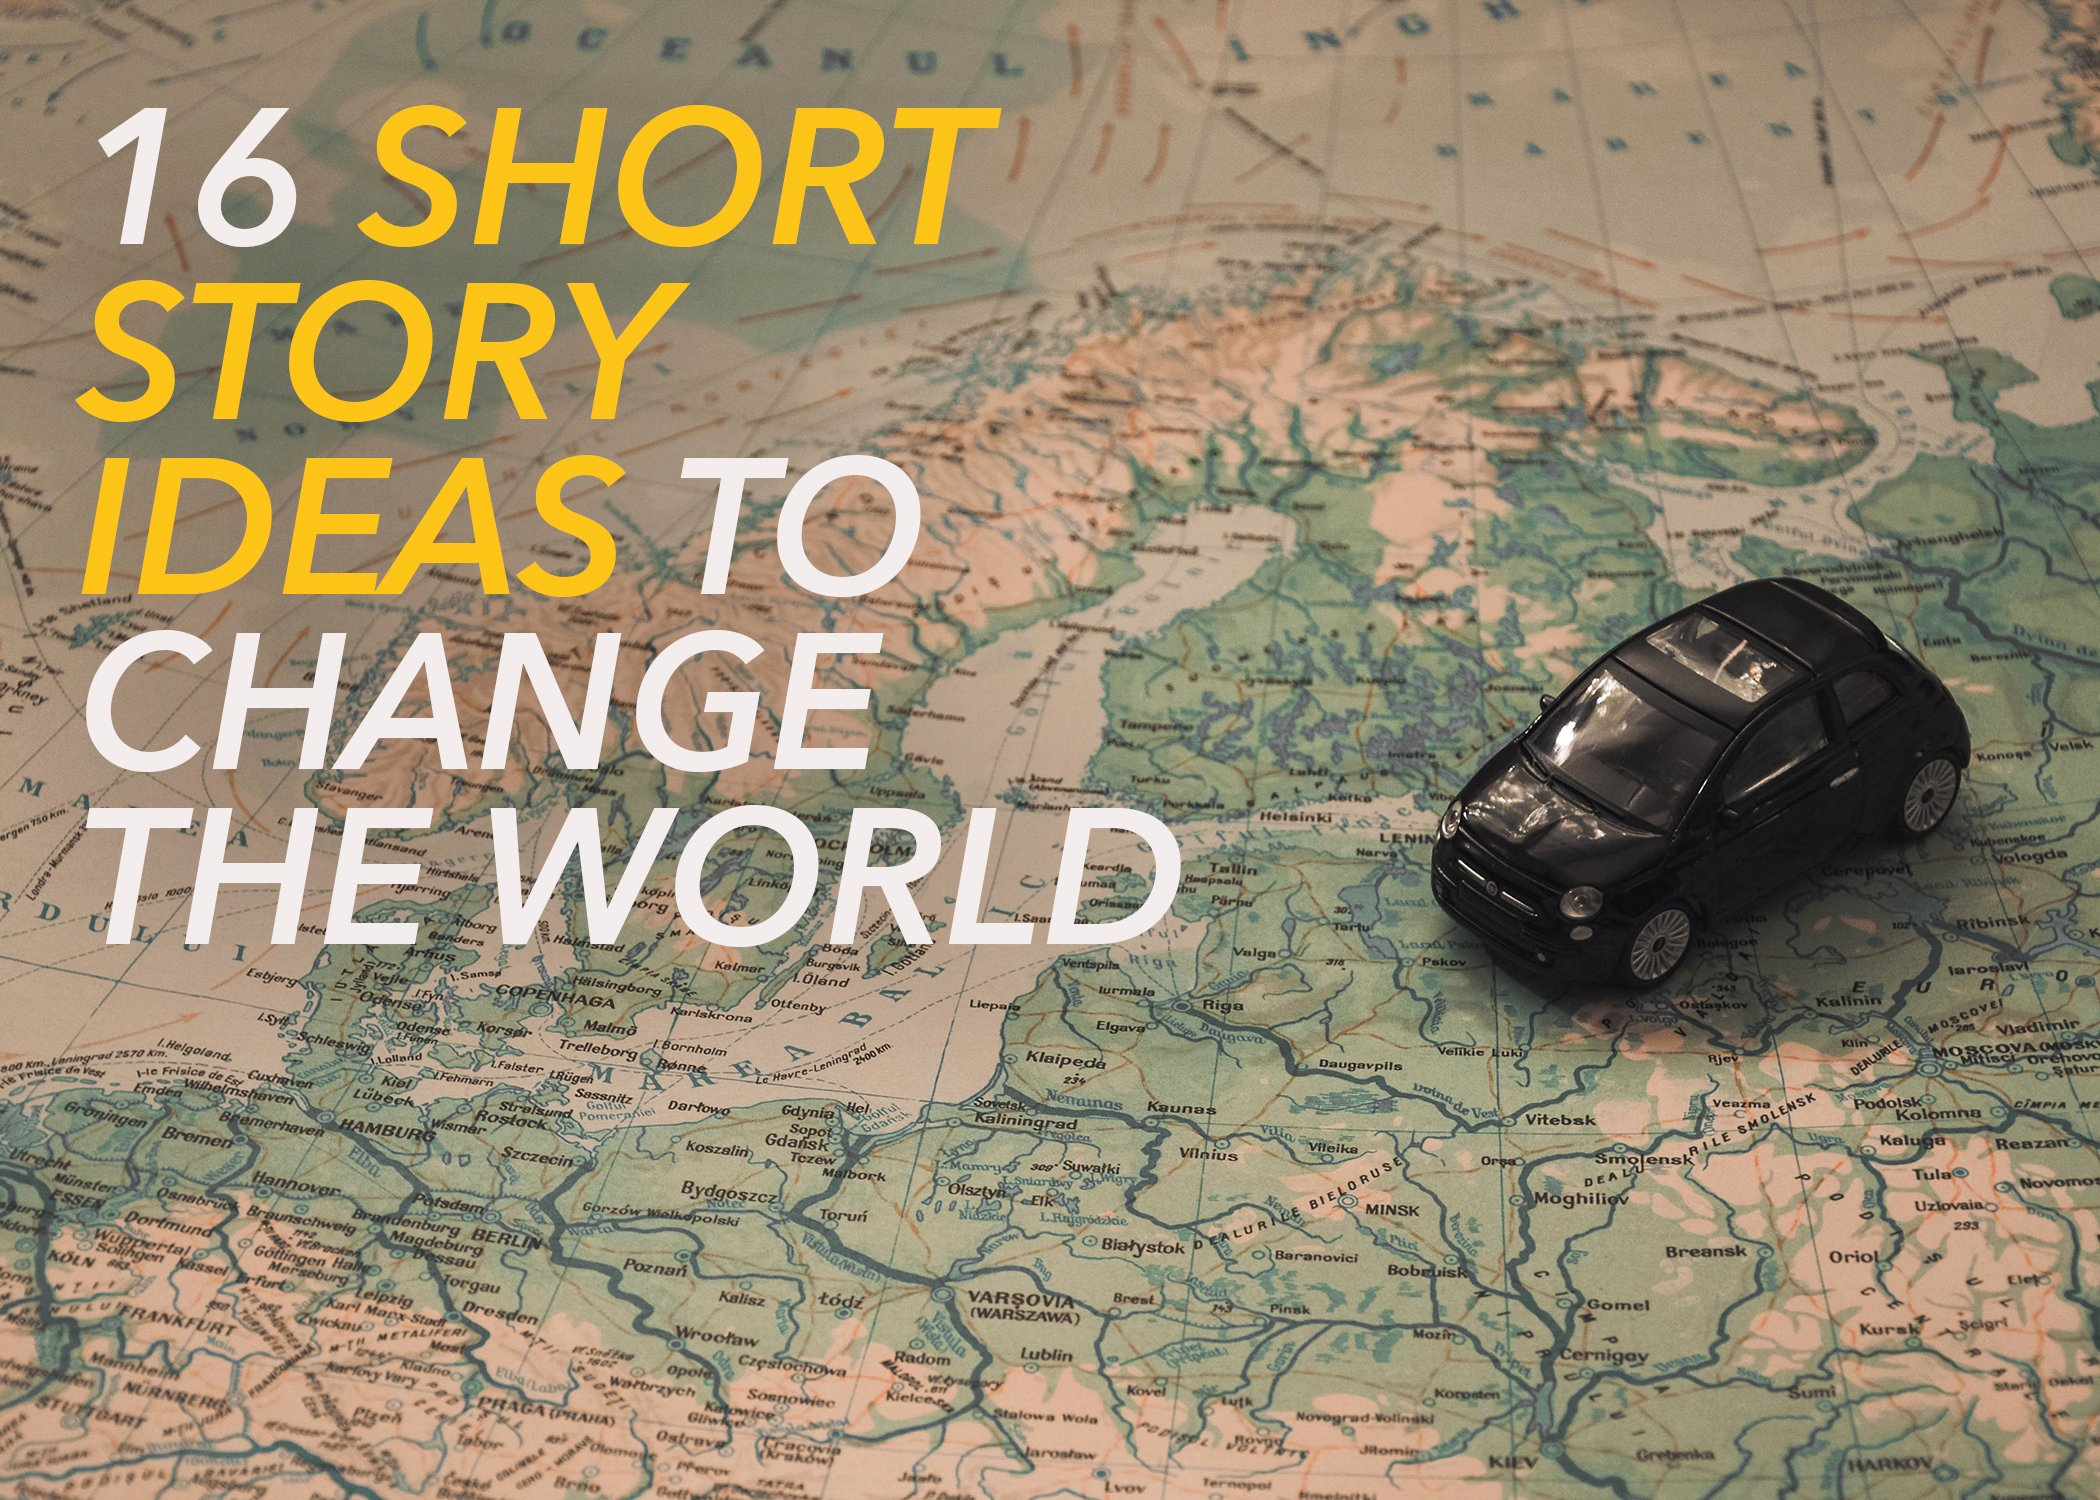 Short Story Essay Ideas Lovely 16 Short Story Ideas to Change the World